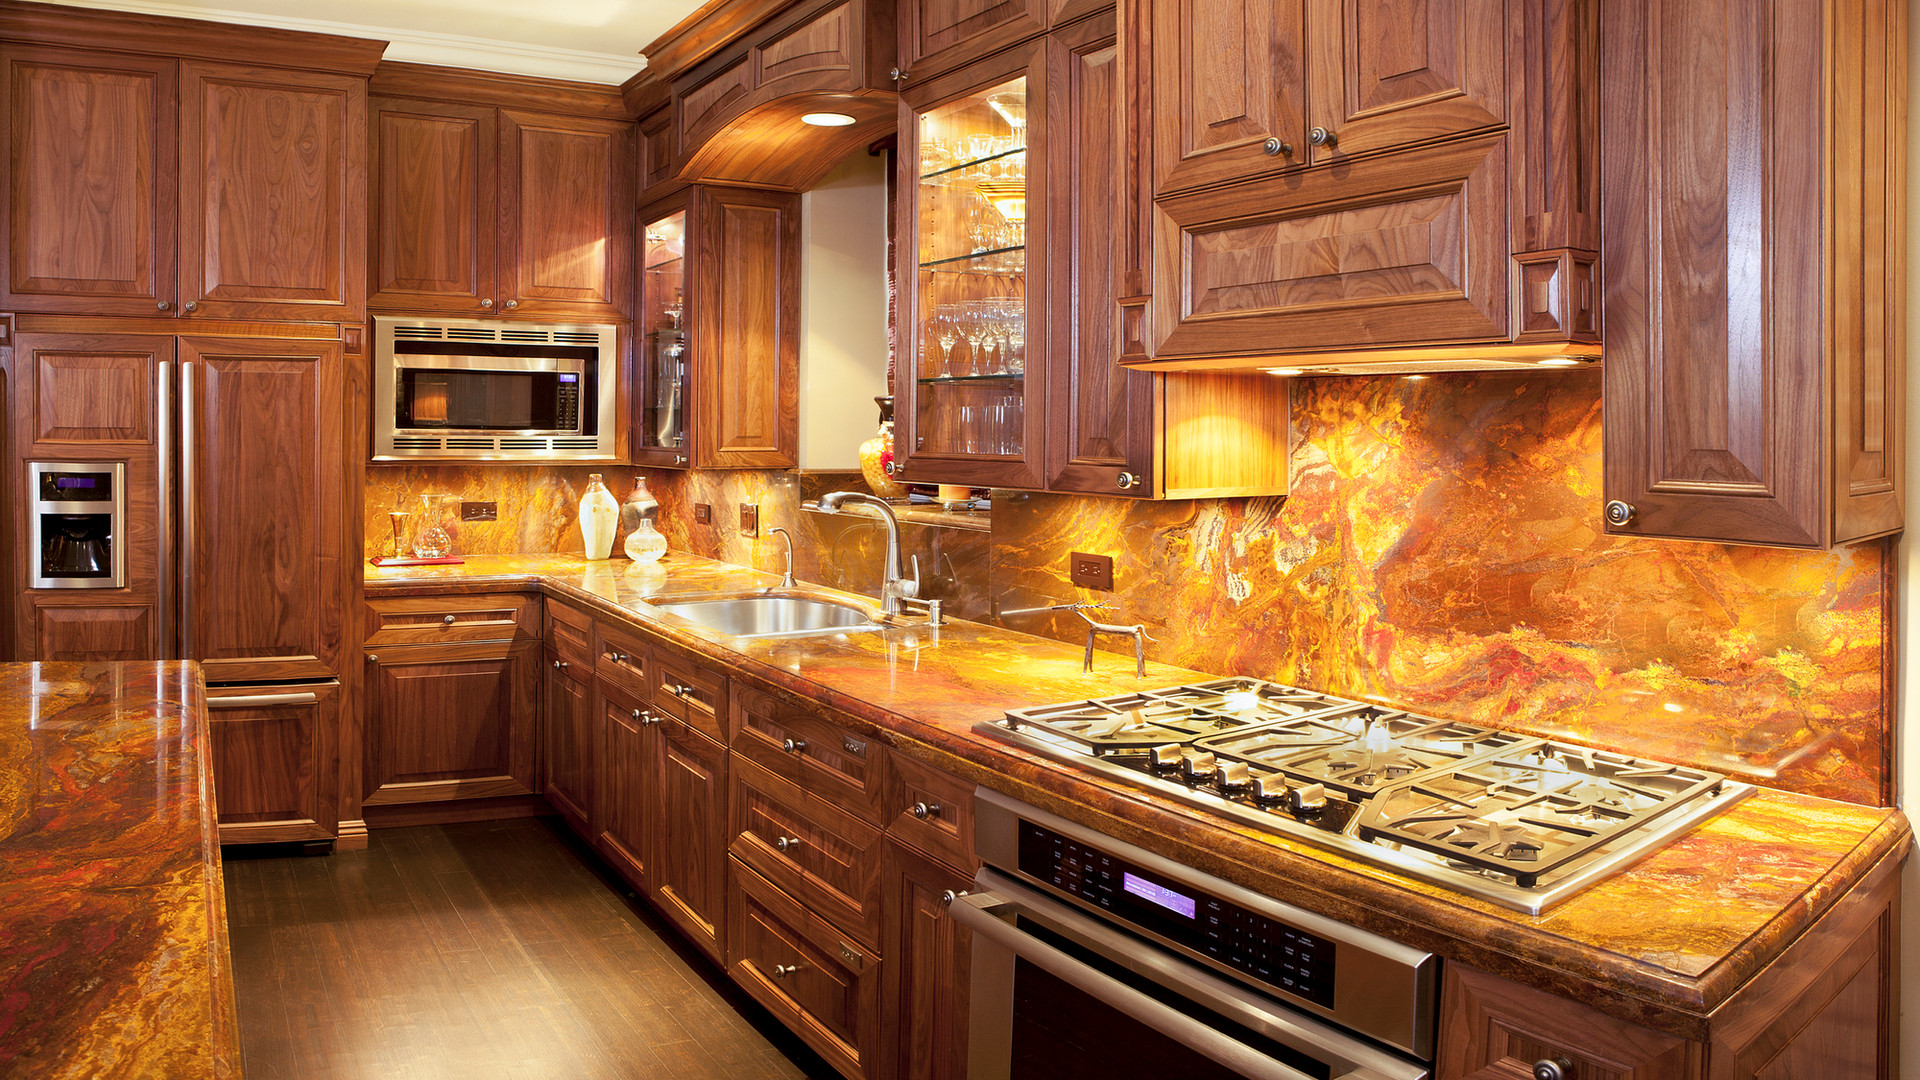 luxury-contemporary-kitchen-17328194.jpg